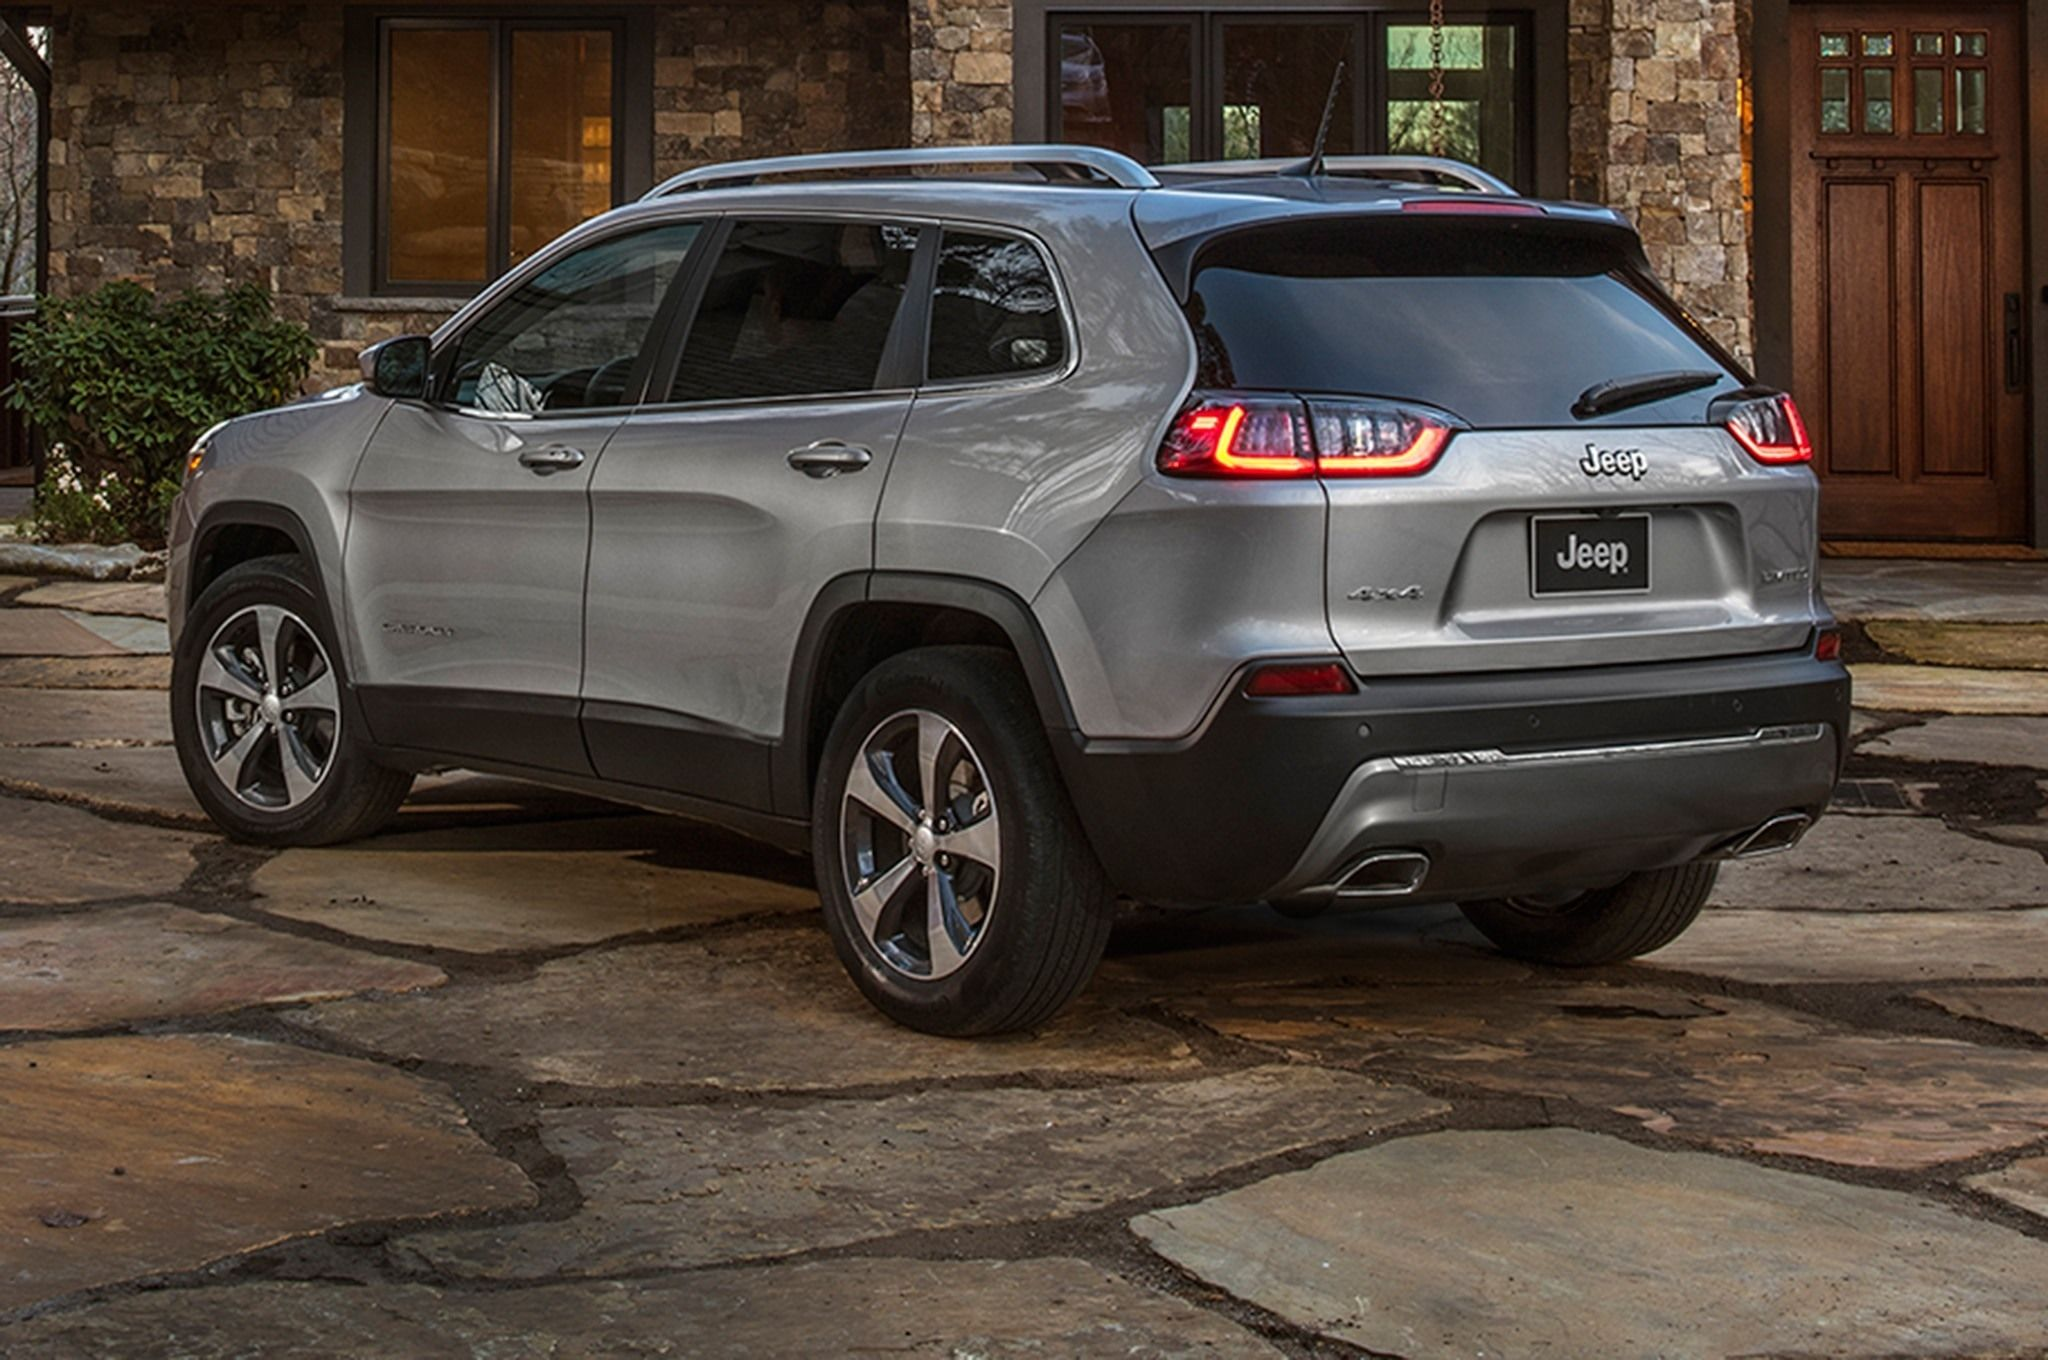 Grand Cherokee 2019 Interior Exterior And Review Jeep Compass